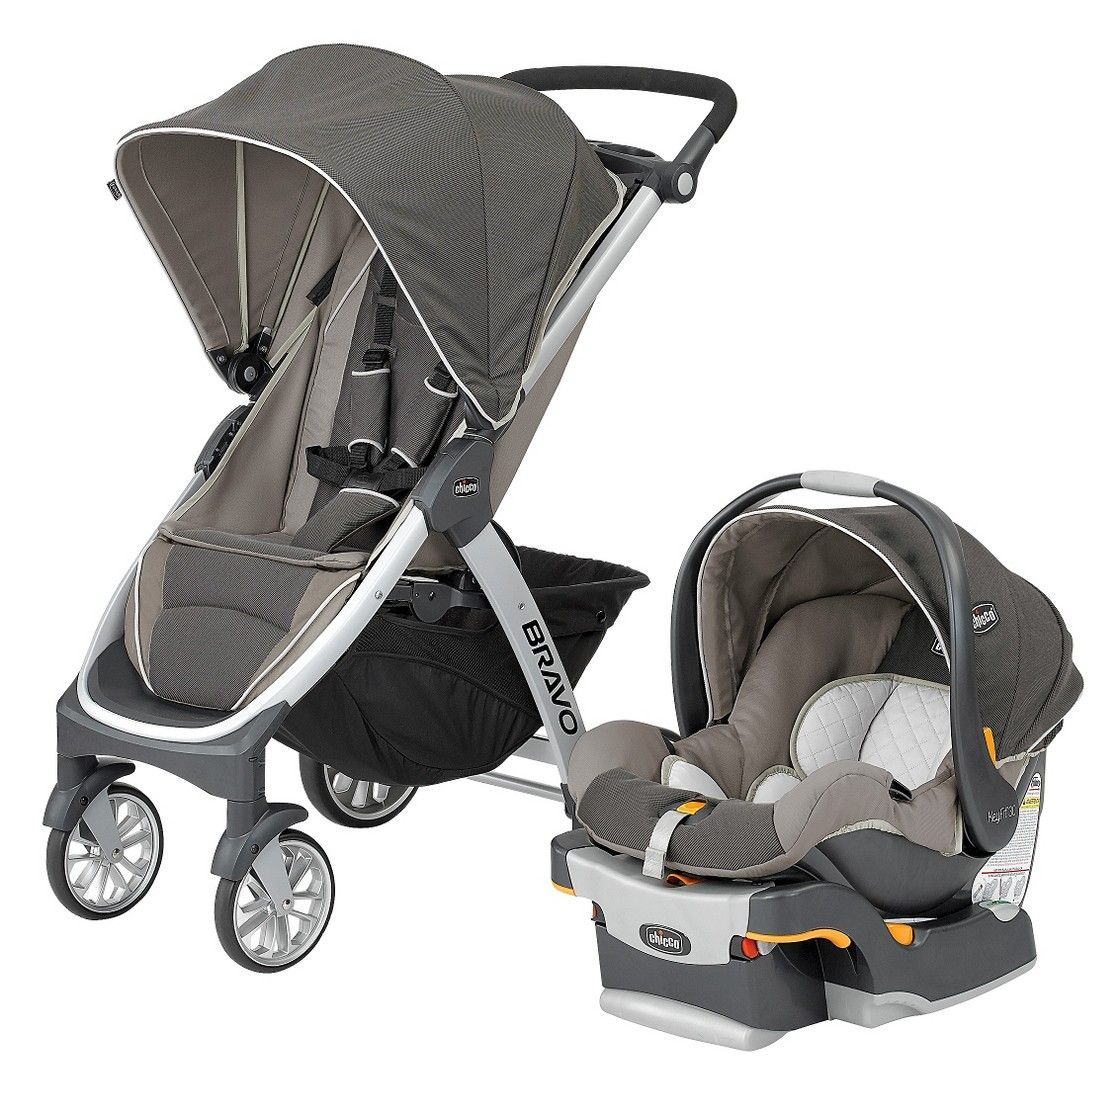 Chicco Bravo Trio Travel System Travel systems for baby